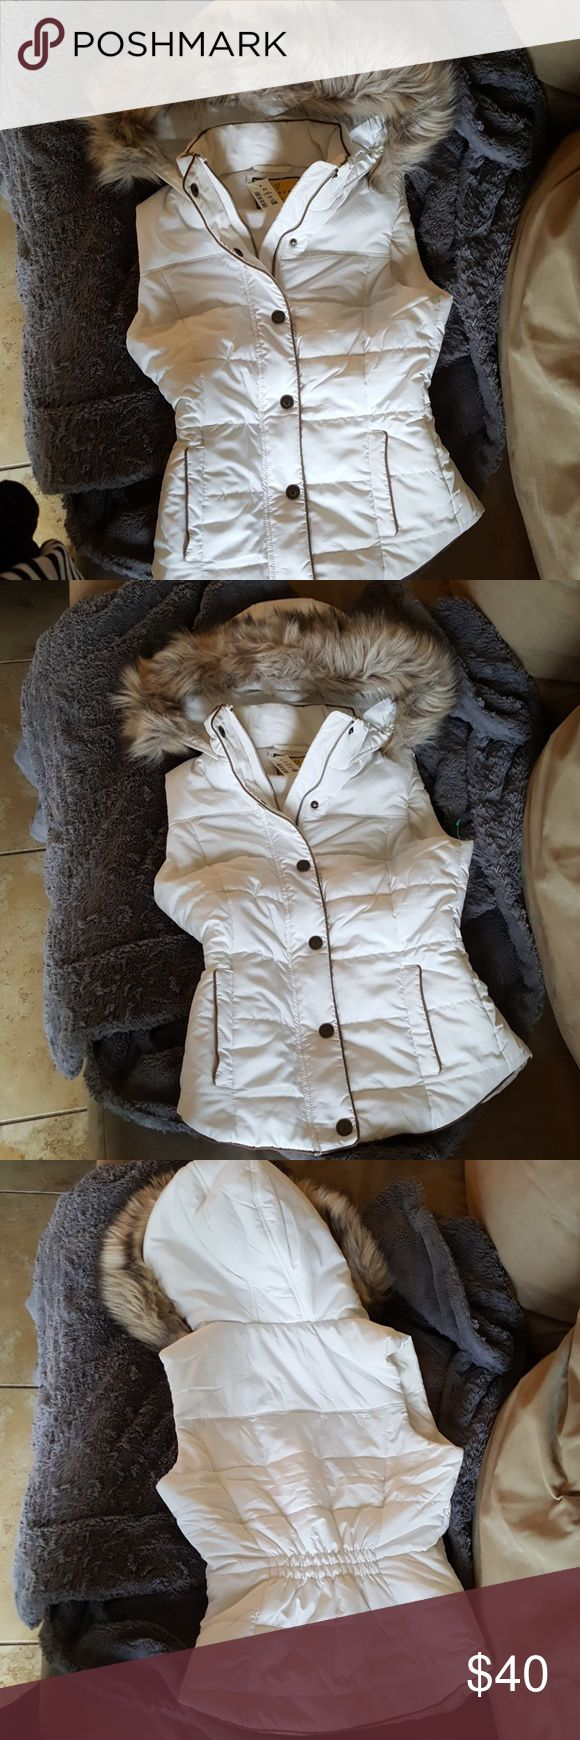 """AERO cream prince & fox faux fur puffer vest XS It features a buttoned storm flap and quilted design to keep you toasty; removable faux fur and contrasting trim elevate this cool weather staple's style.  Slim fit. Approx. length: 24"""" Style: 2224. Imported.  Shell, Lining & Fill: 100% polyester. Faux Fur: 55% modacrylic, 32% acrylic, 13% polyester. Machine wash/dry. Aeropostale Jackets & Coats Vests"""